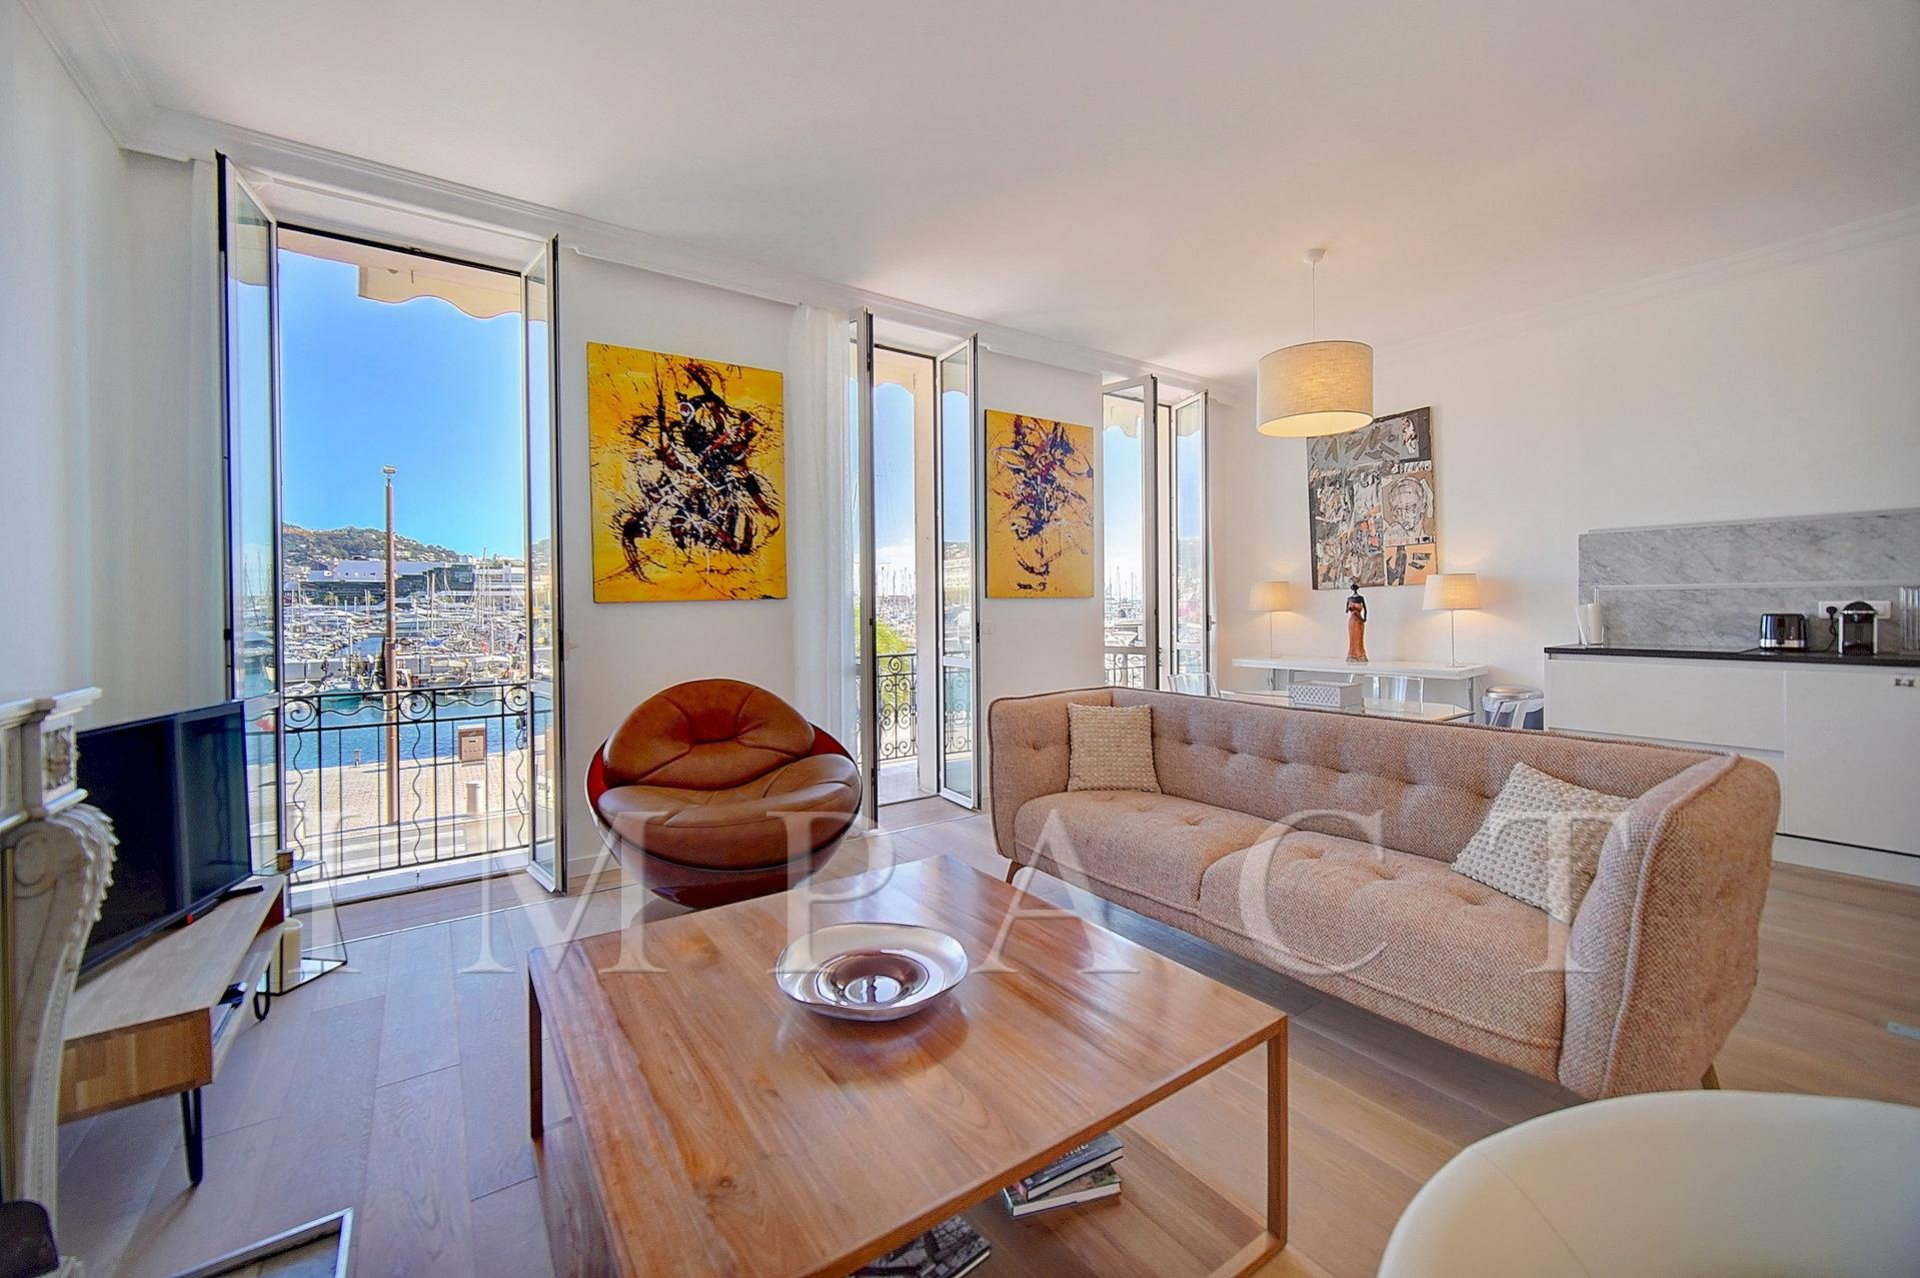 2 bedrooms apartment to rent, old pier view of Cannes